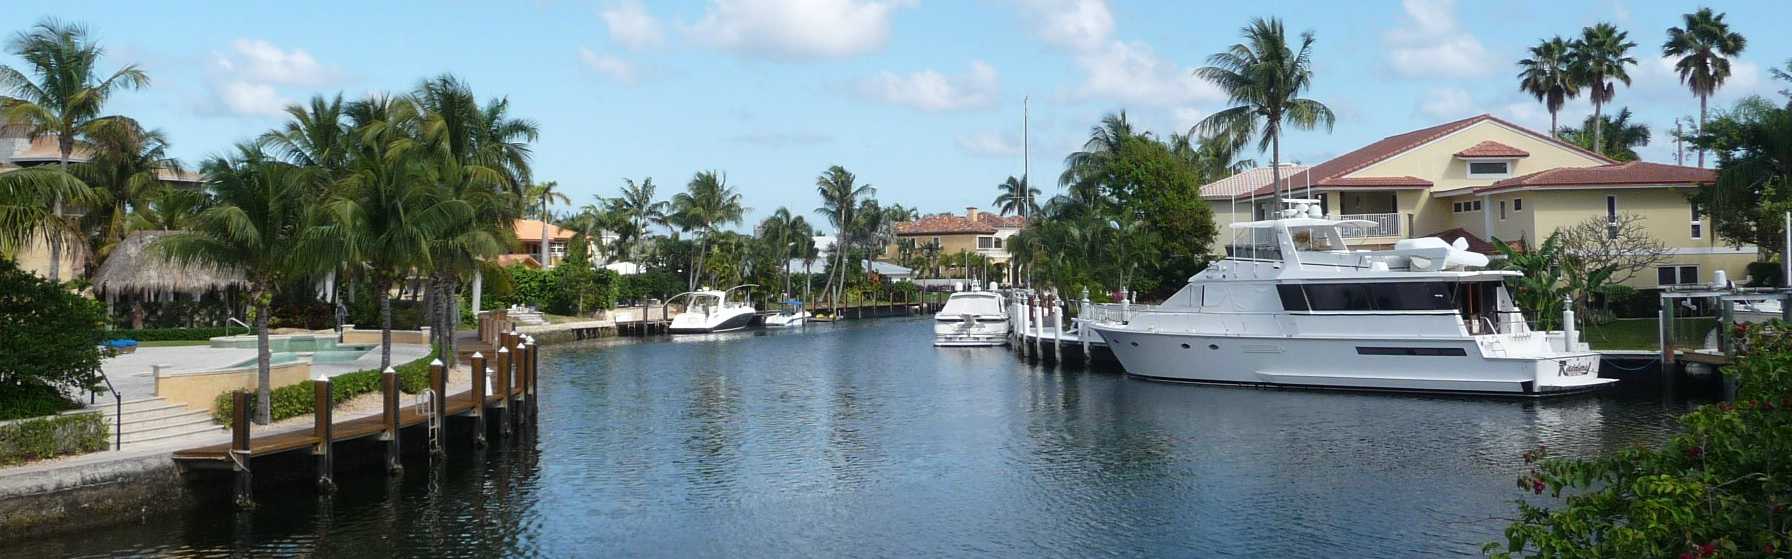 pompano beach real estate waterfront